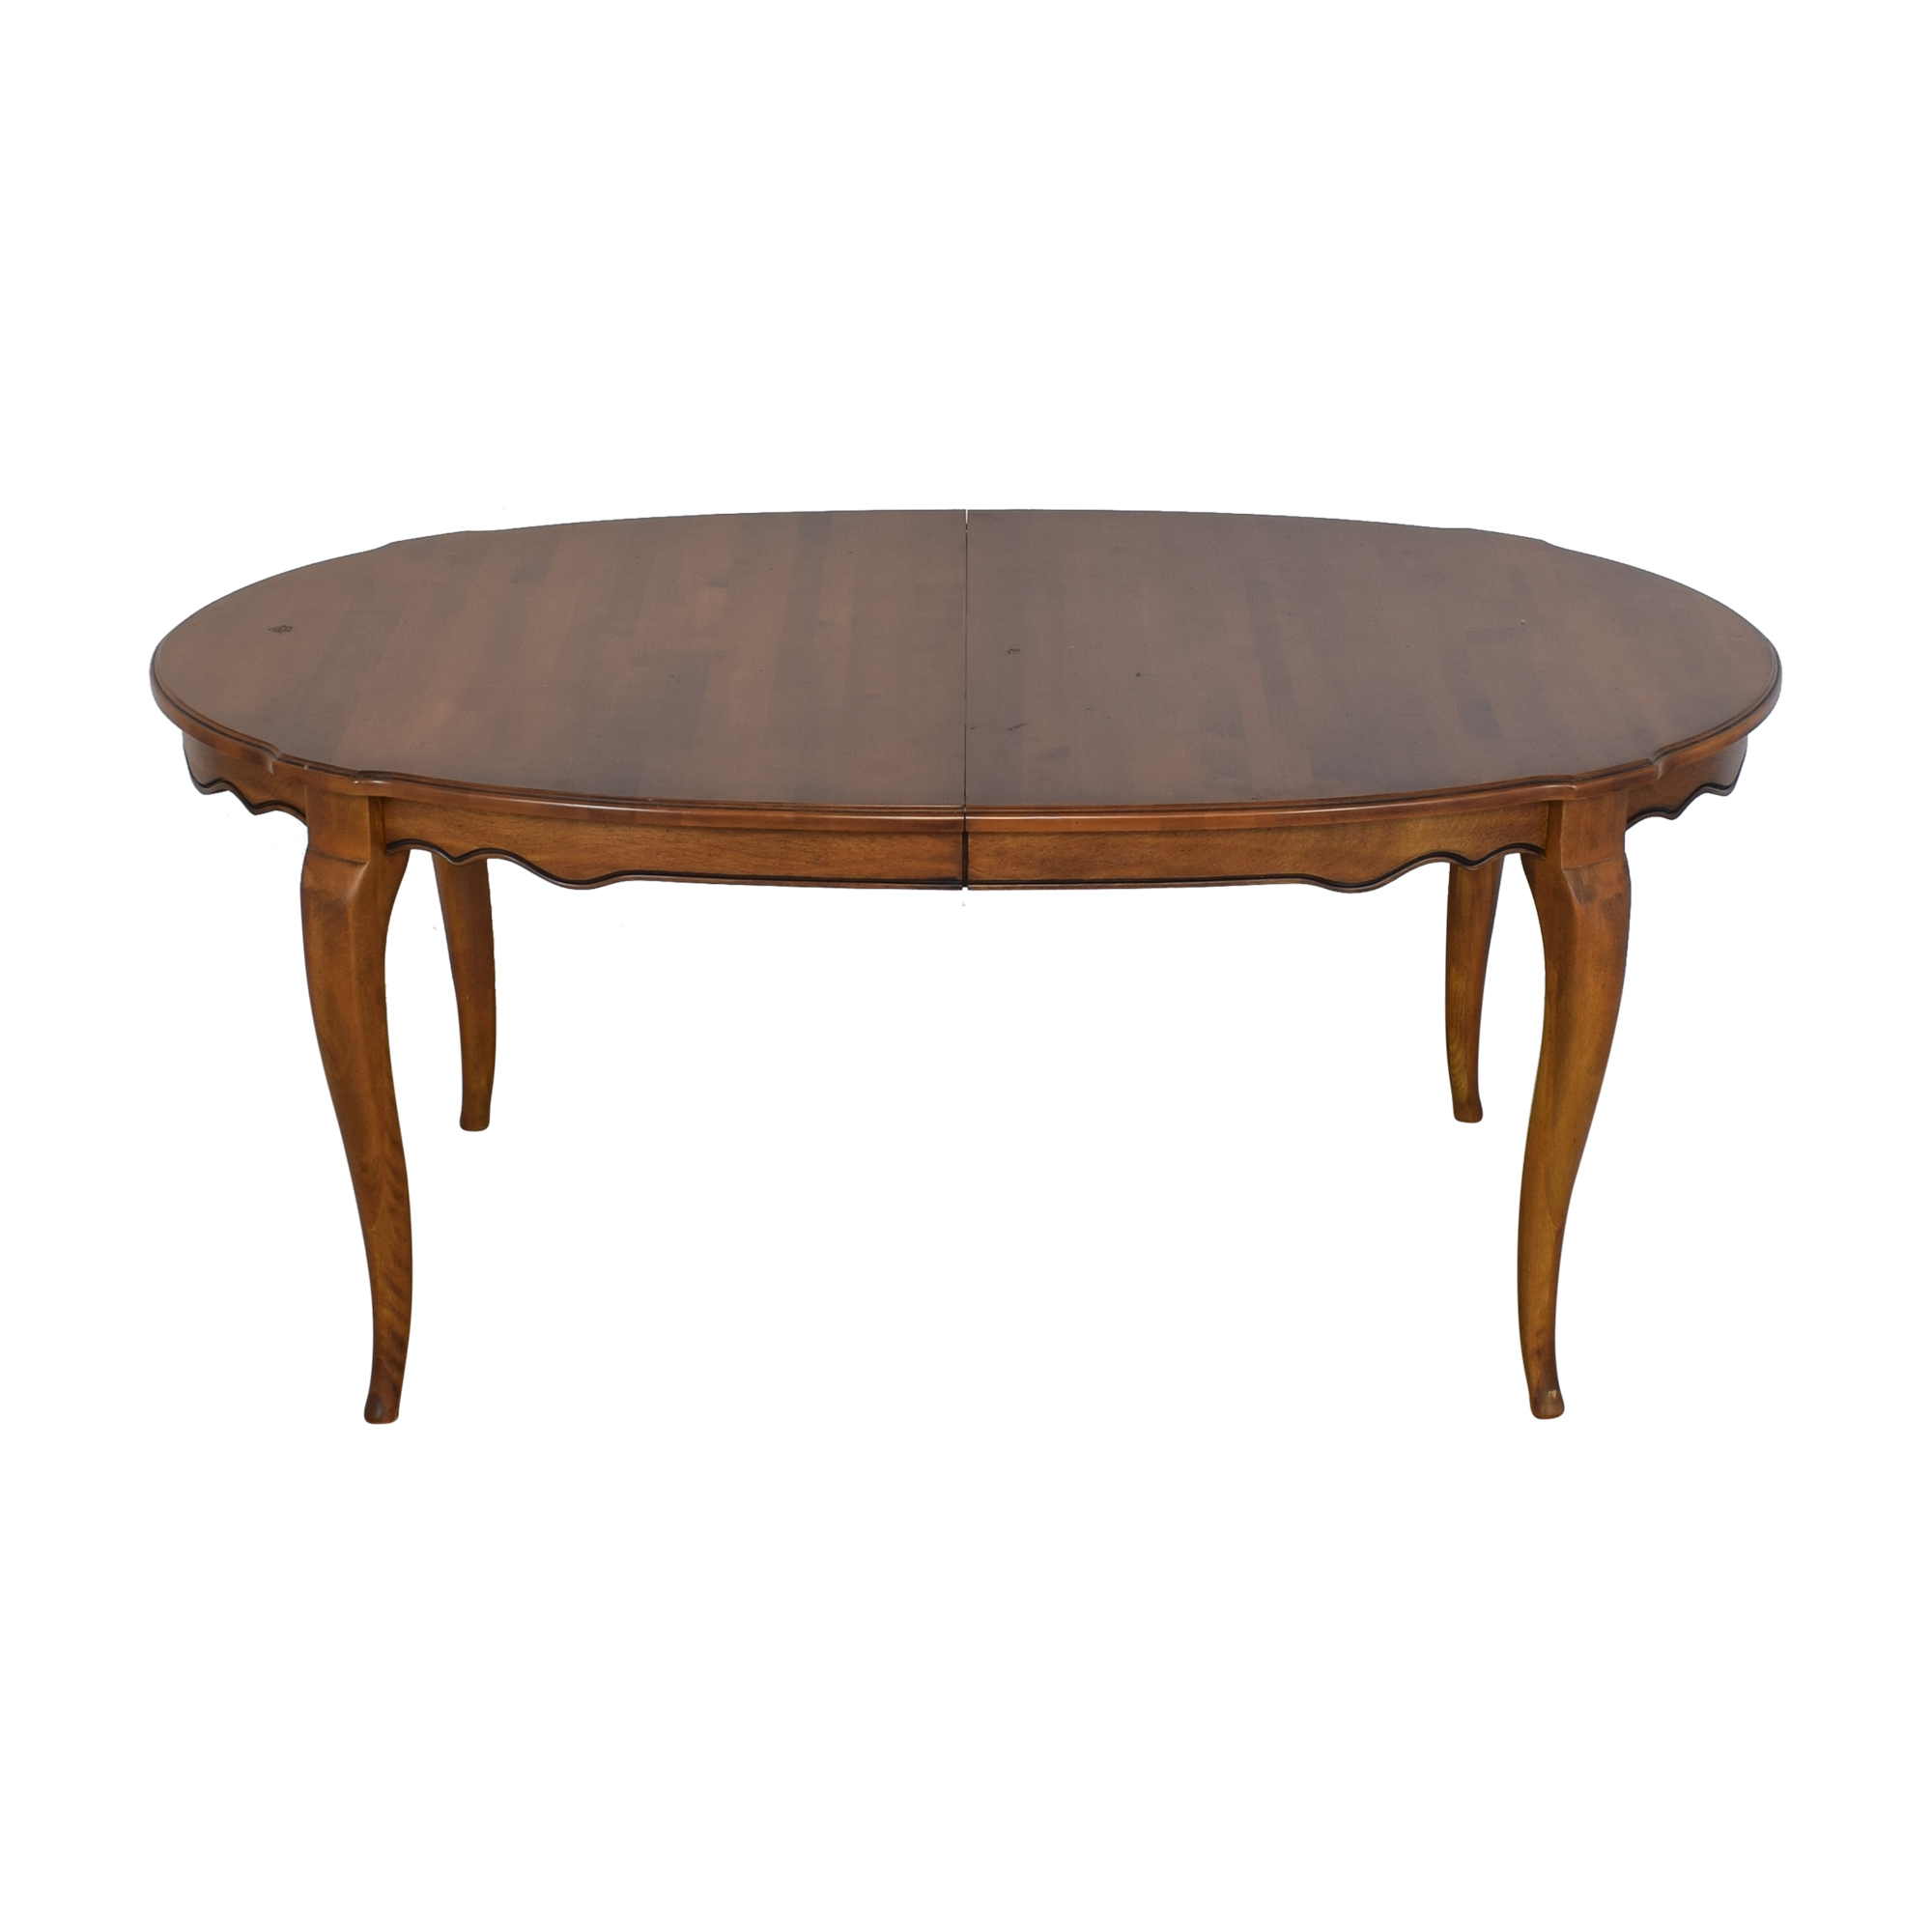 Ethan Allen Ethan Allen Extendable Dining Table on sale